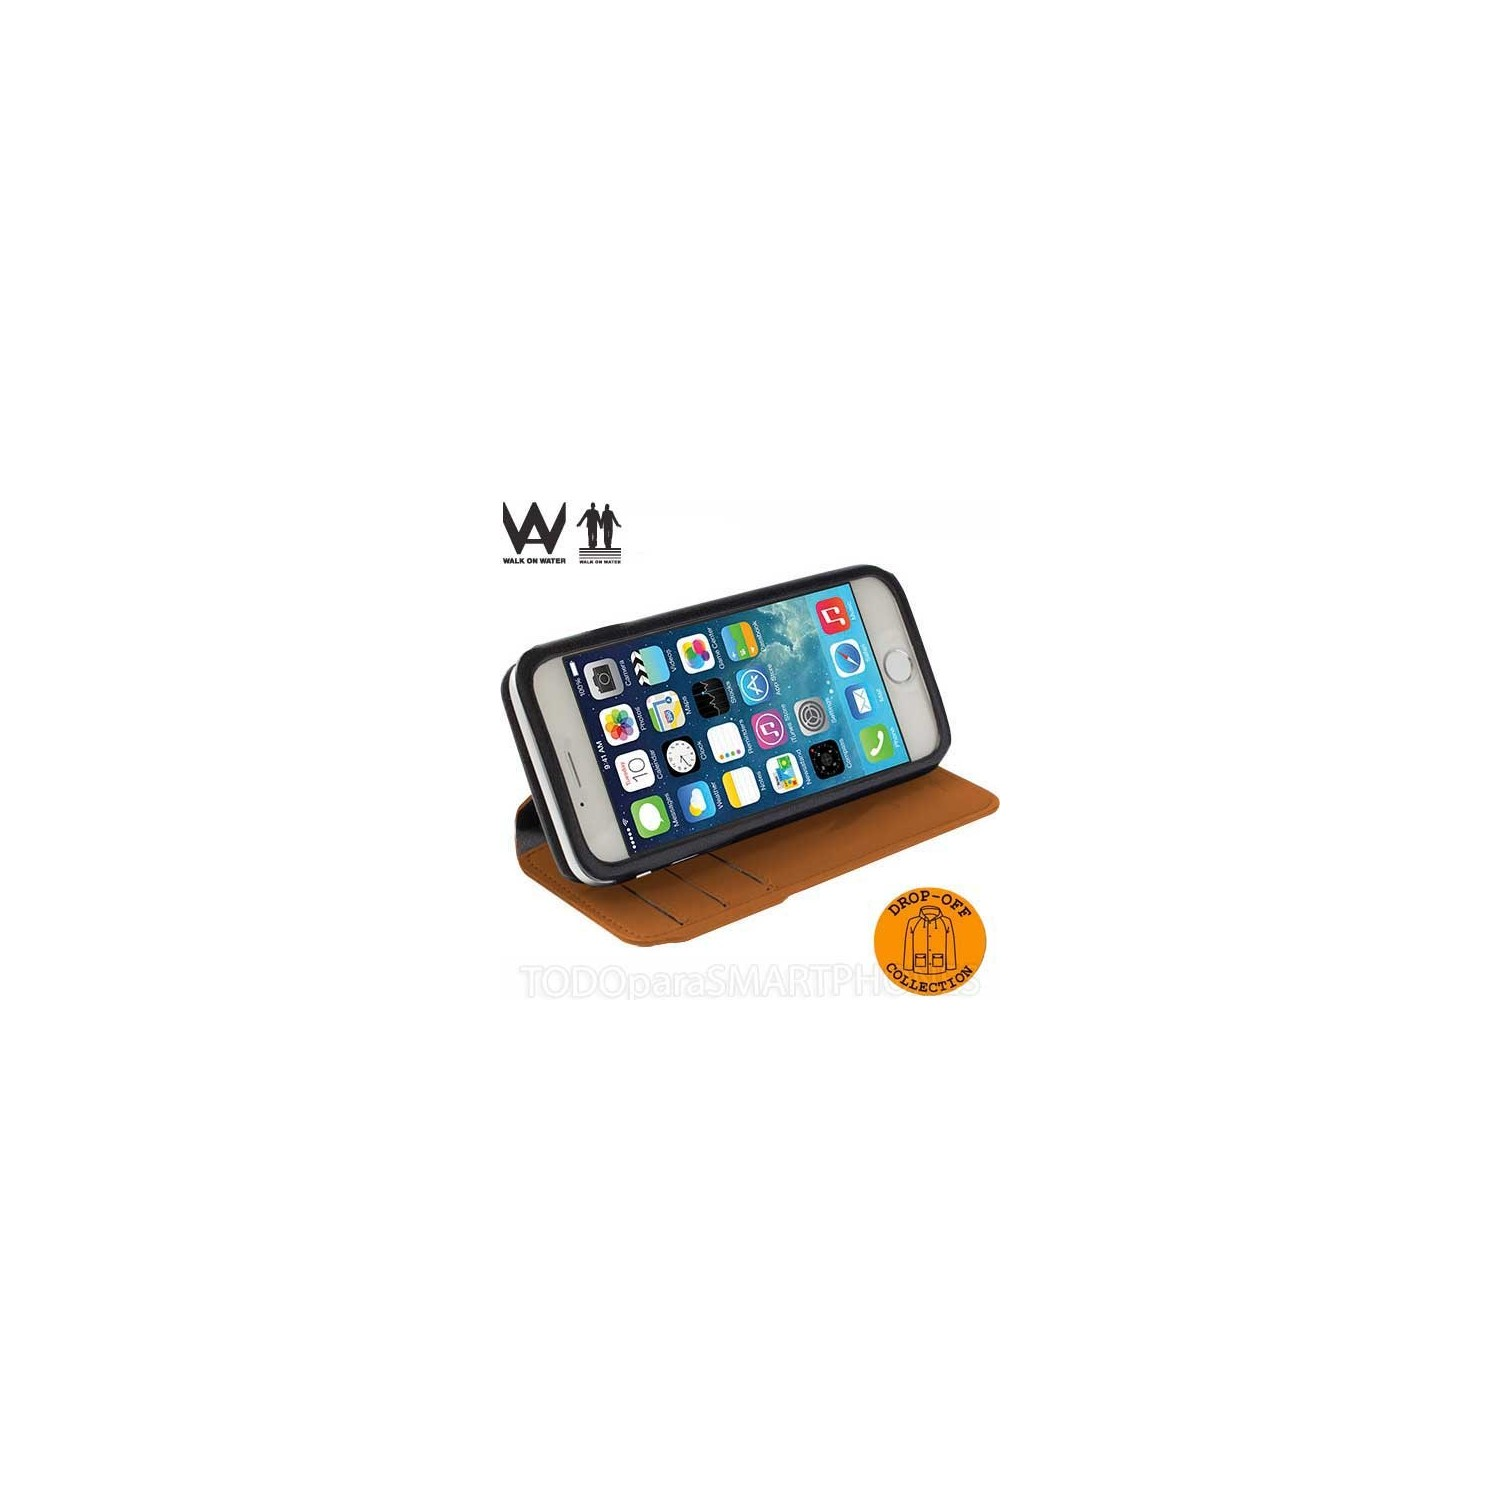 Case - Walk on Water Drop Off Carry Stand Case for iPhone 6 plus - Orange